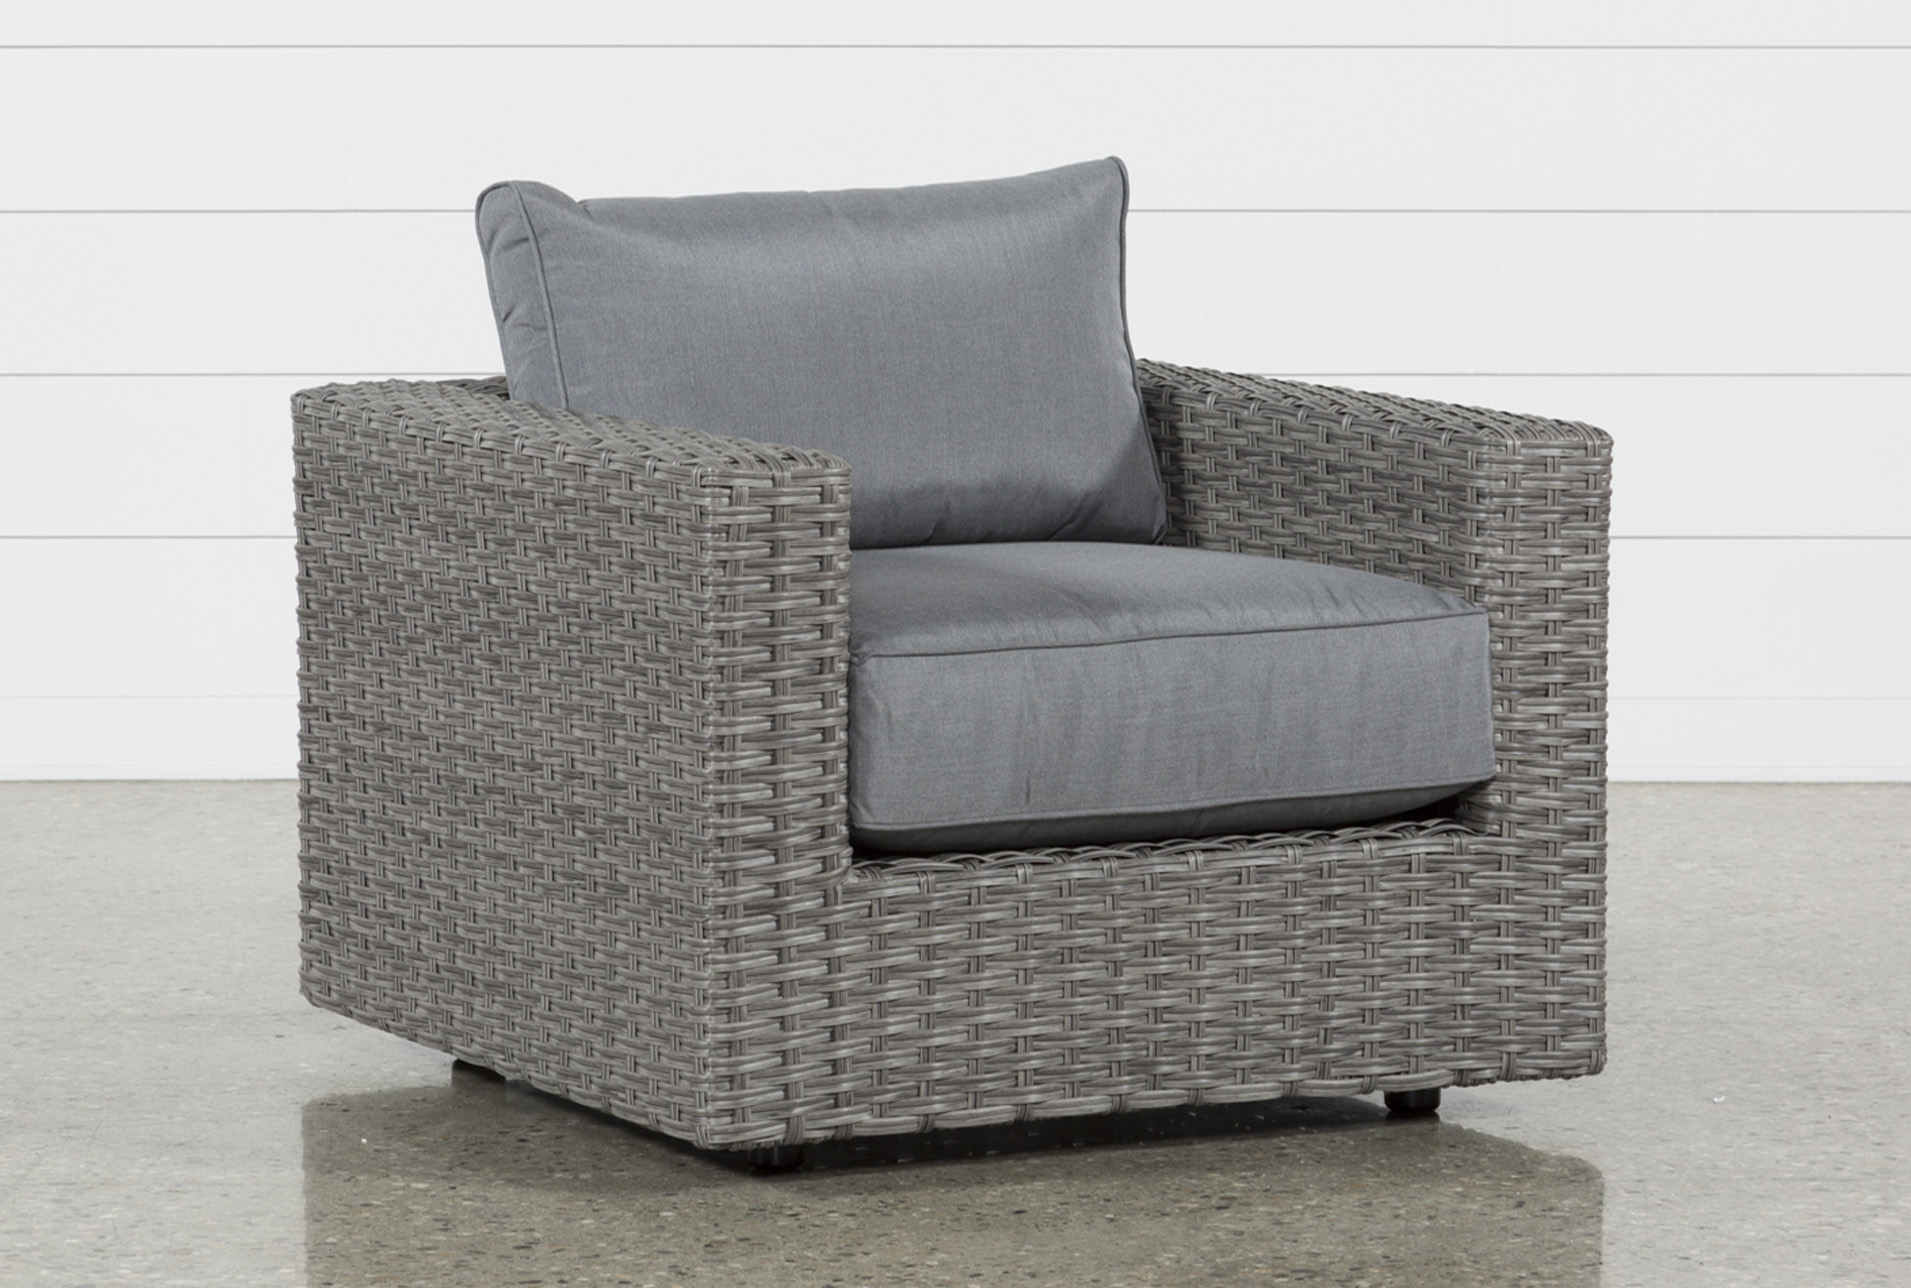 Outdoor Koro Swivel Chair Living Spaces